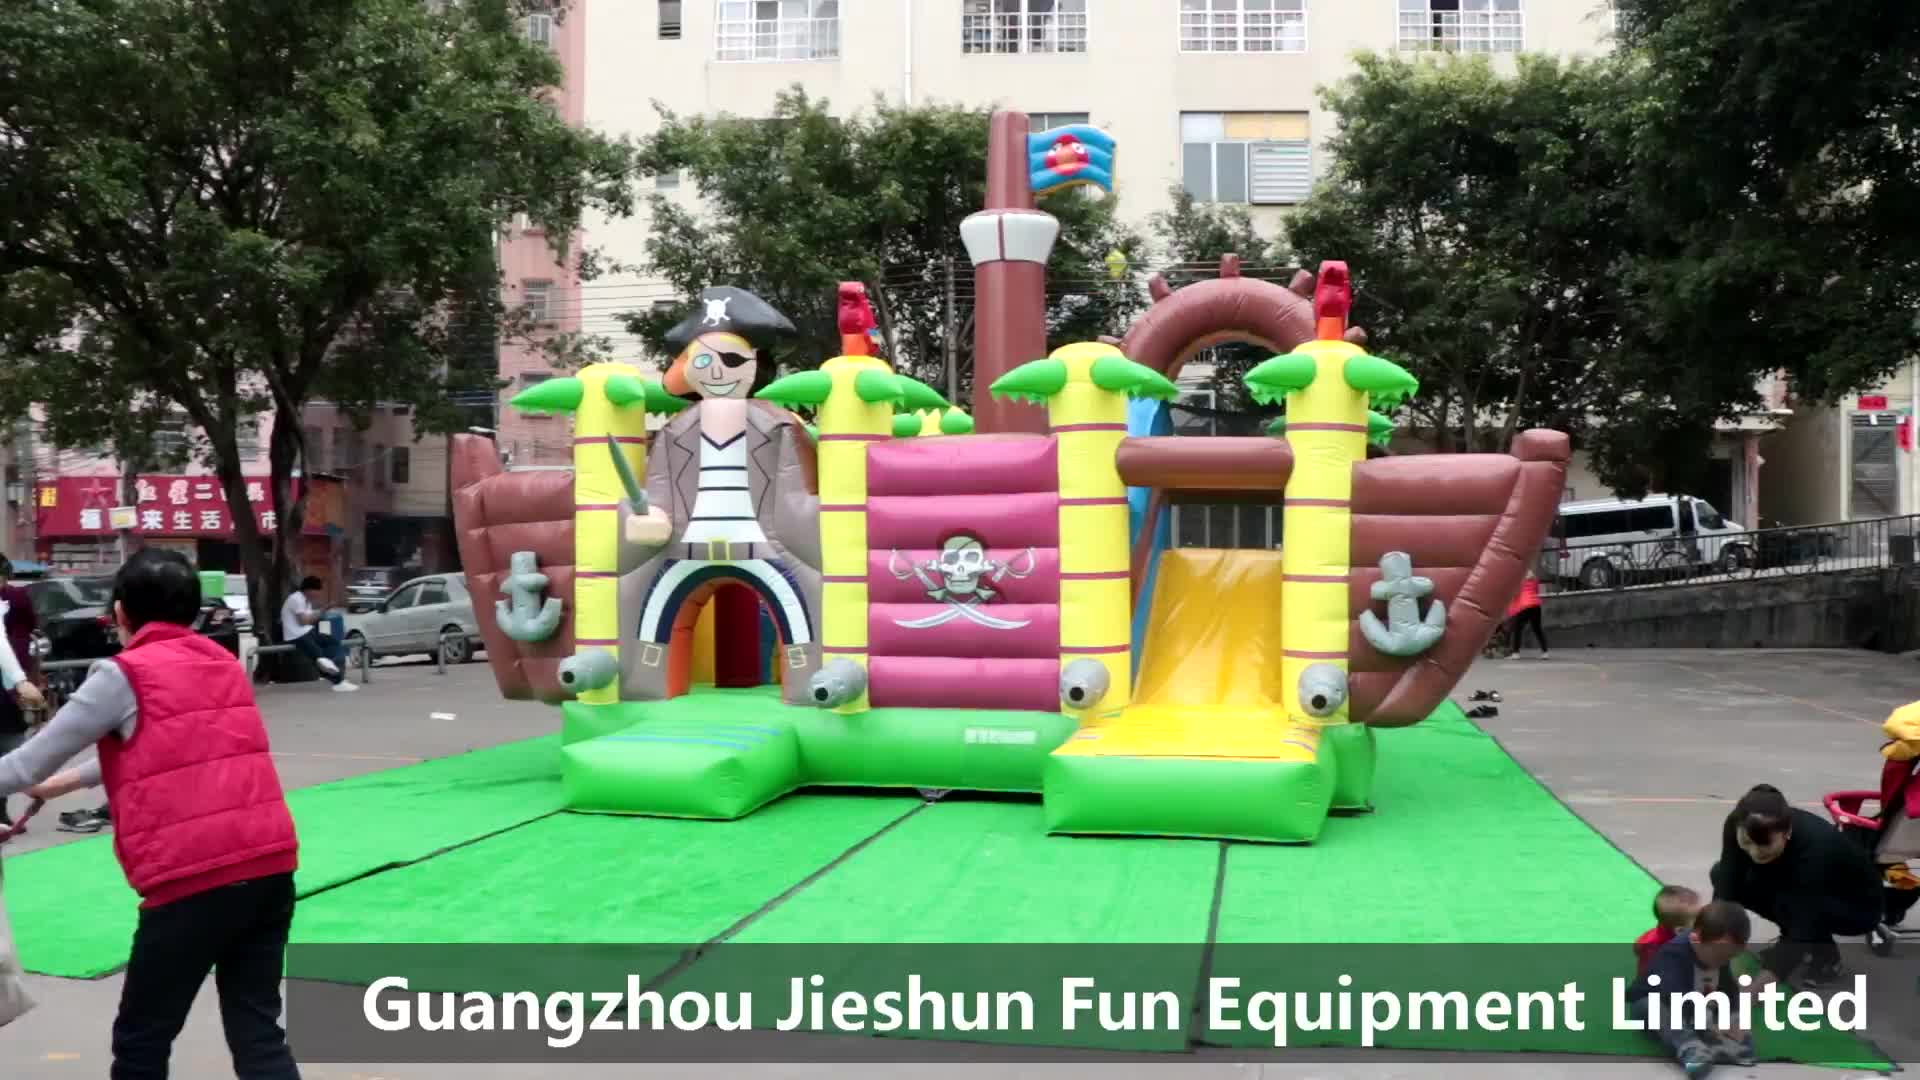 High Quality Custom Pirate Ship Themed Inflatable Jumping Bed Castle Adult Inflatable Bounce House